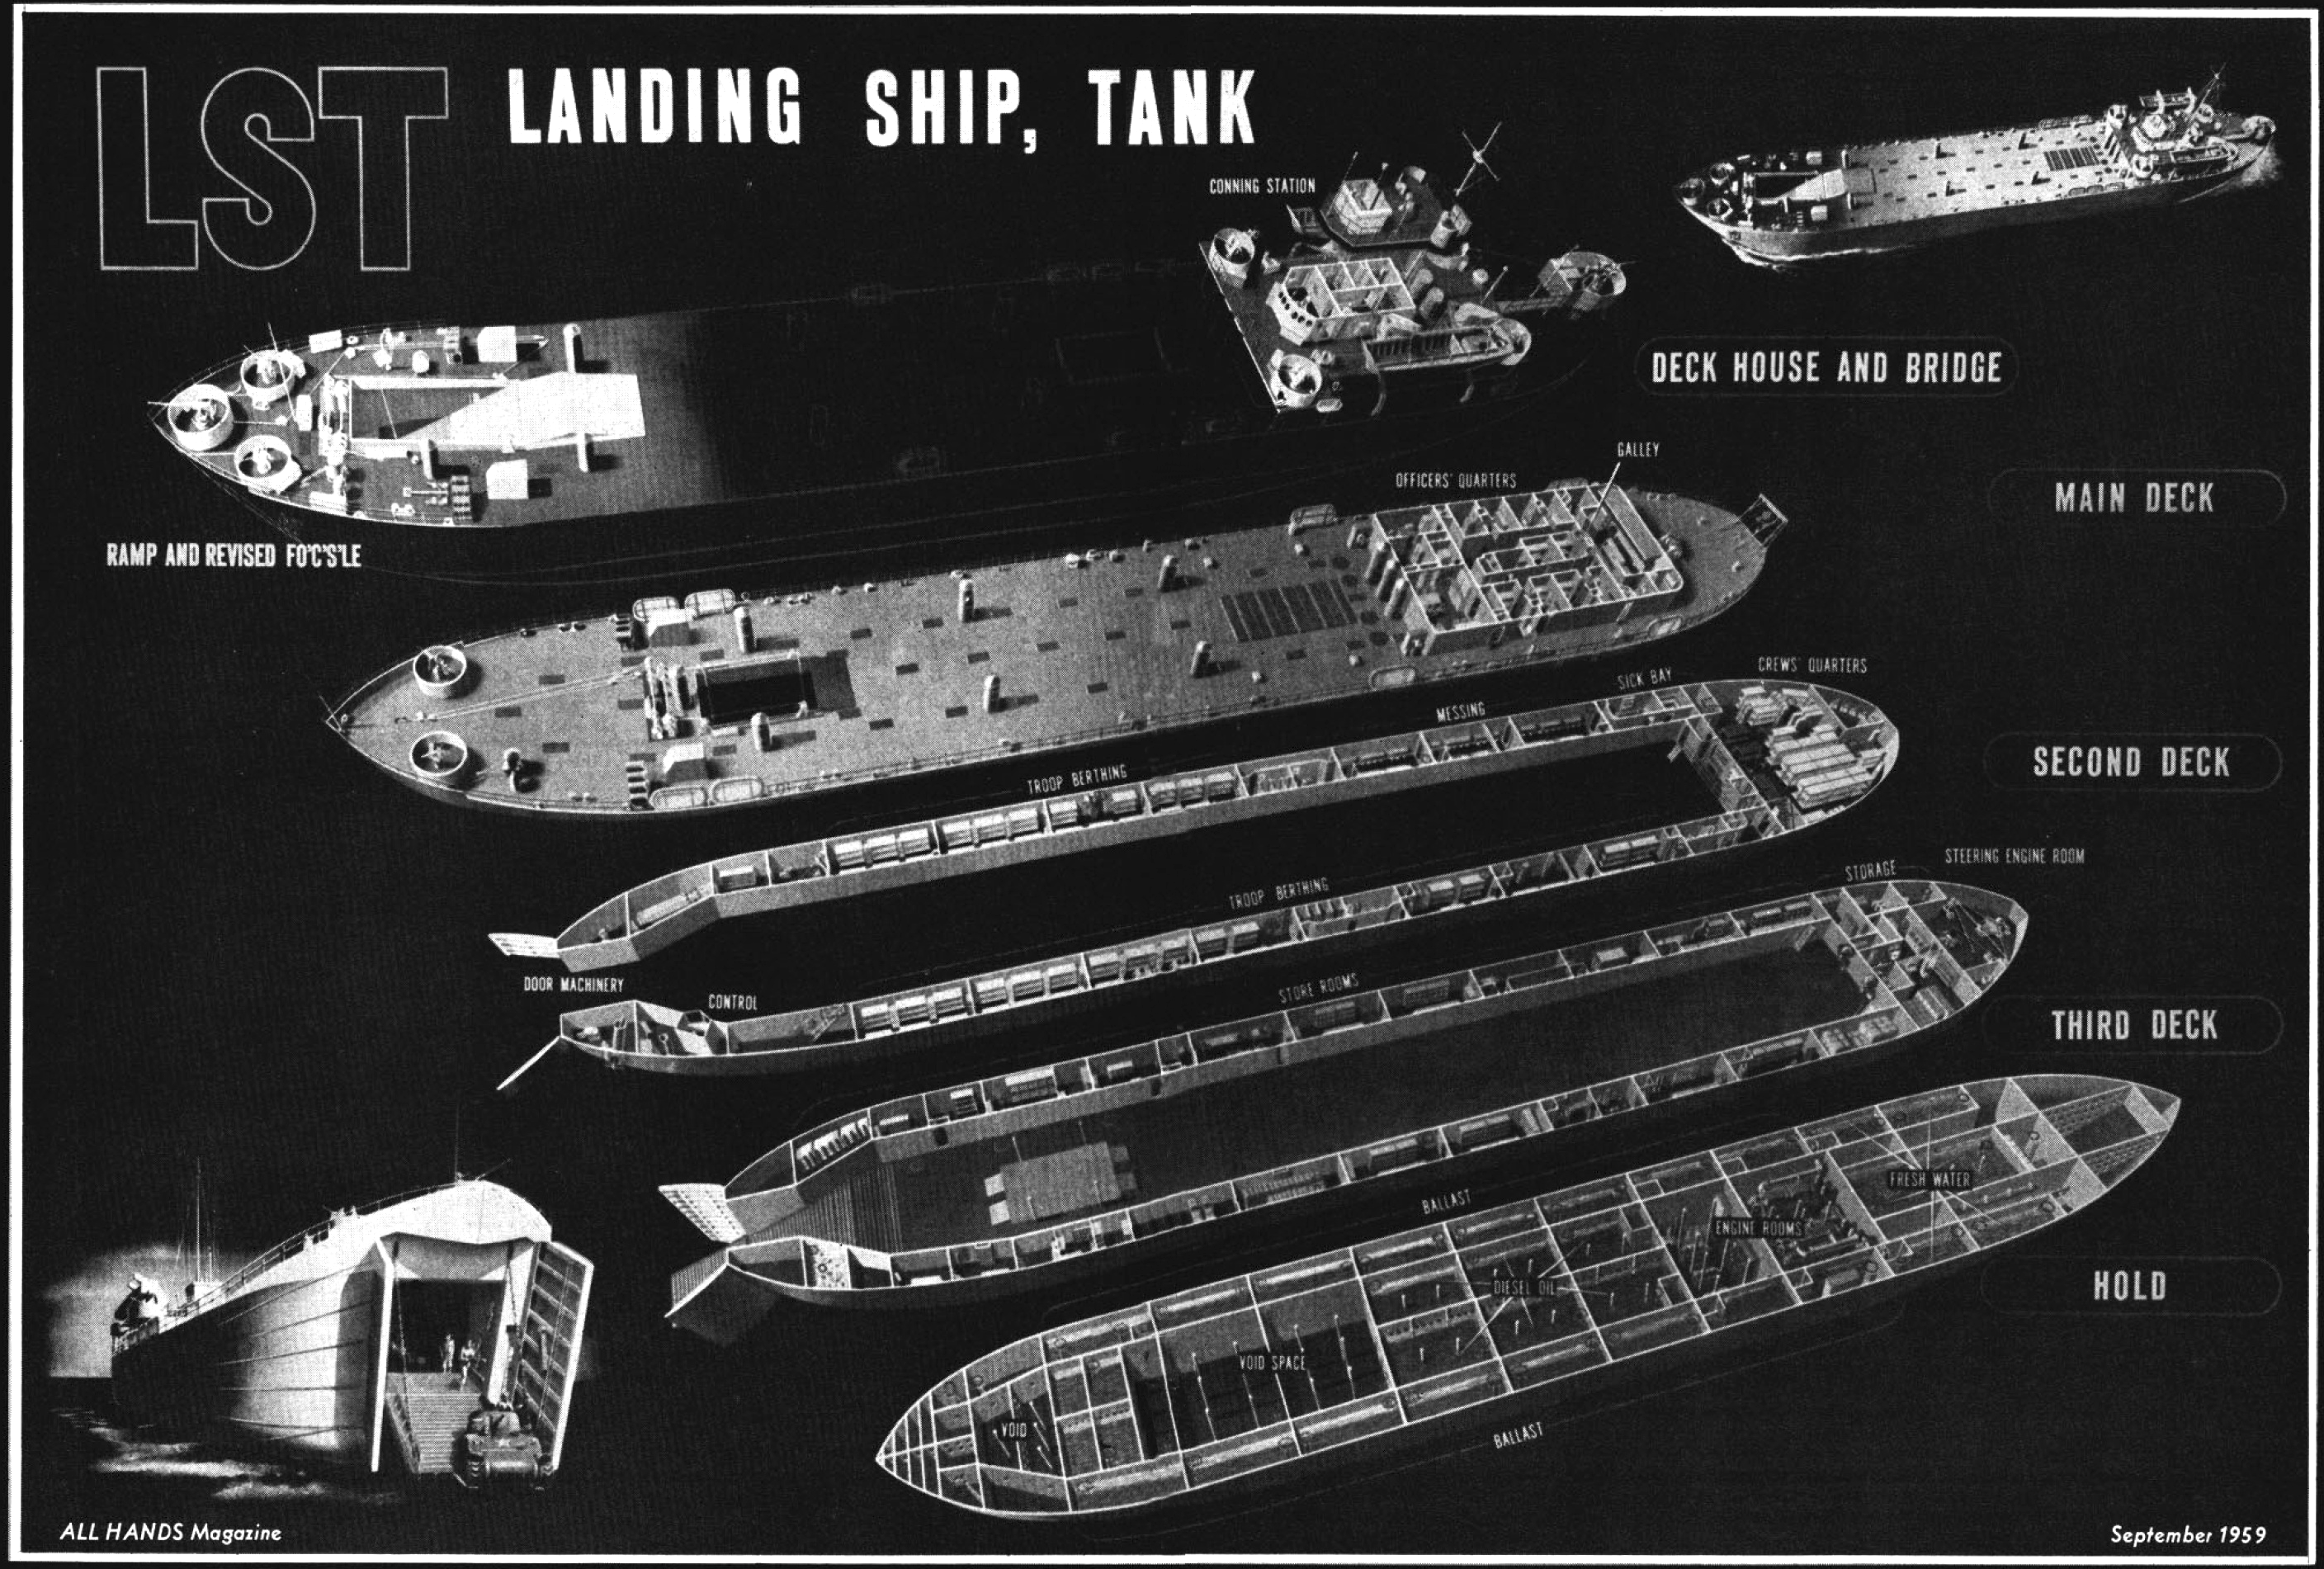 FileTank Landing Ship Technical Diagram 1959